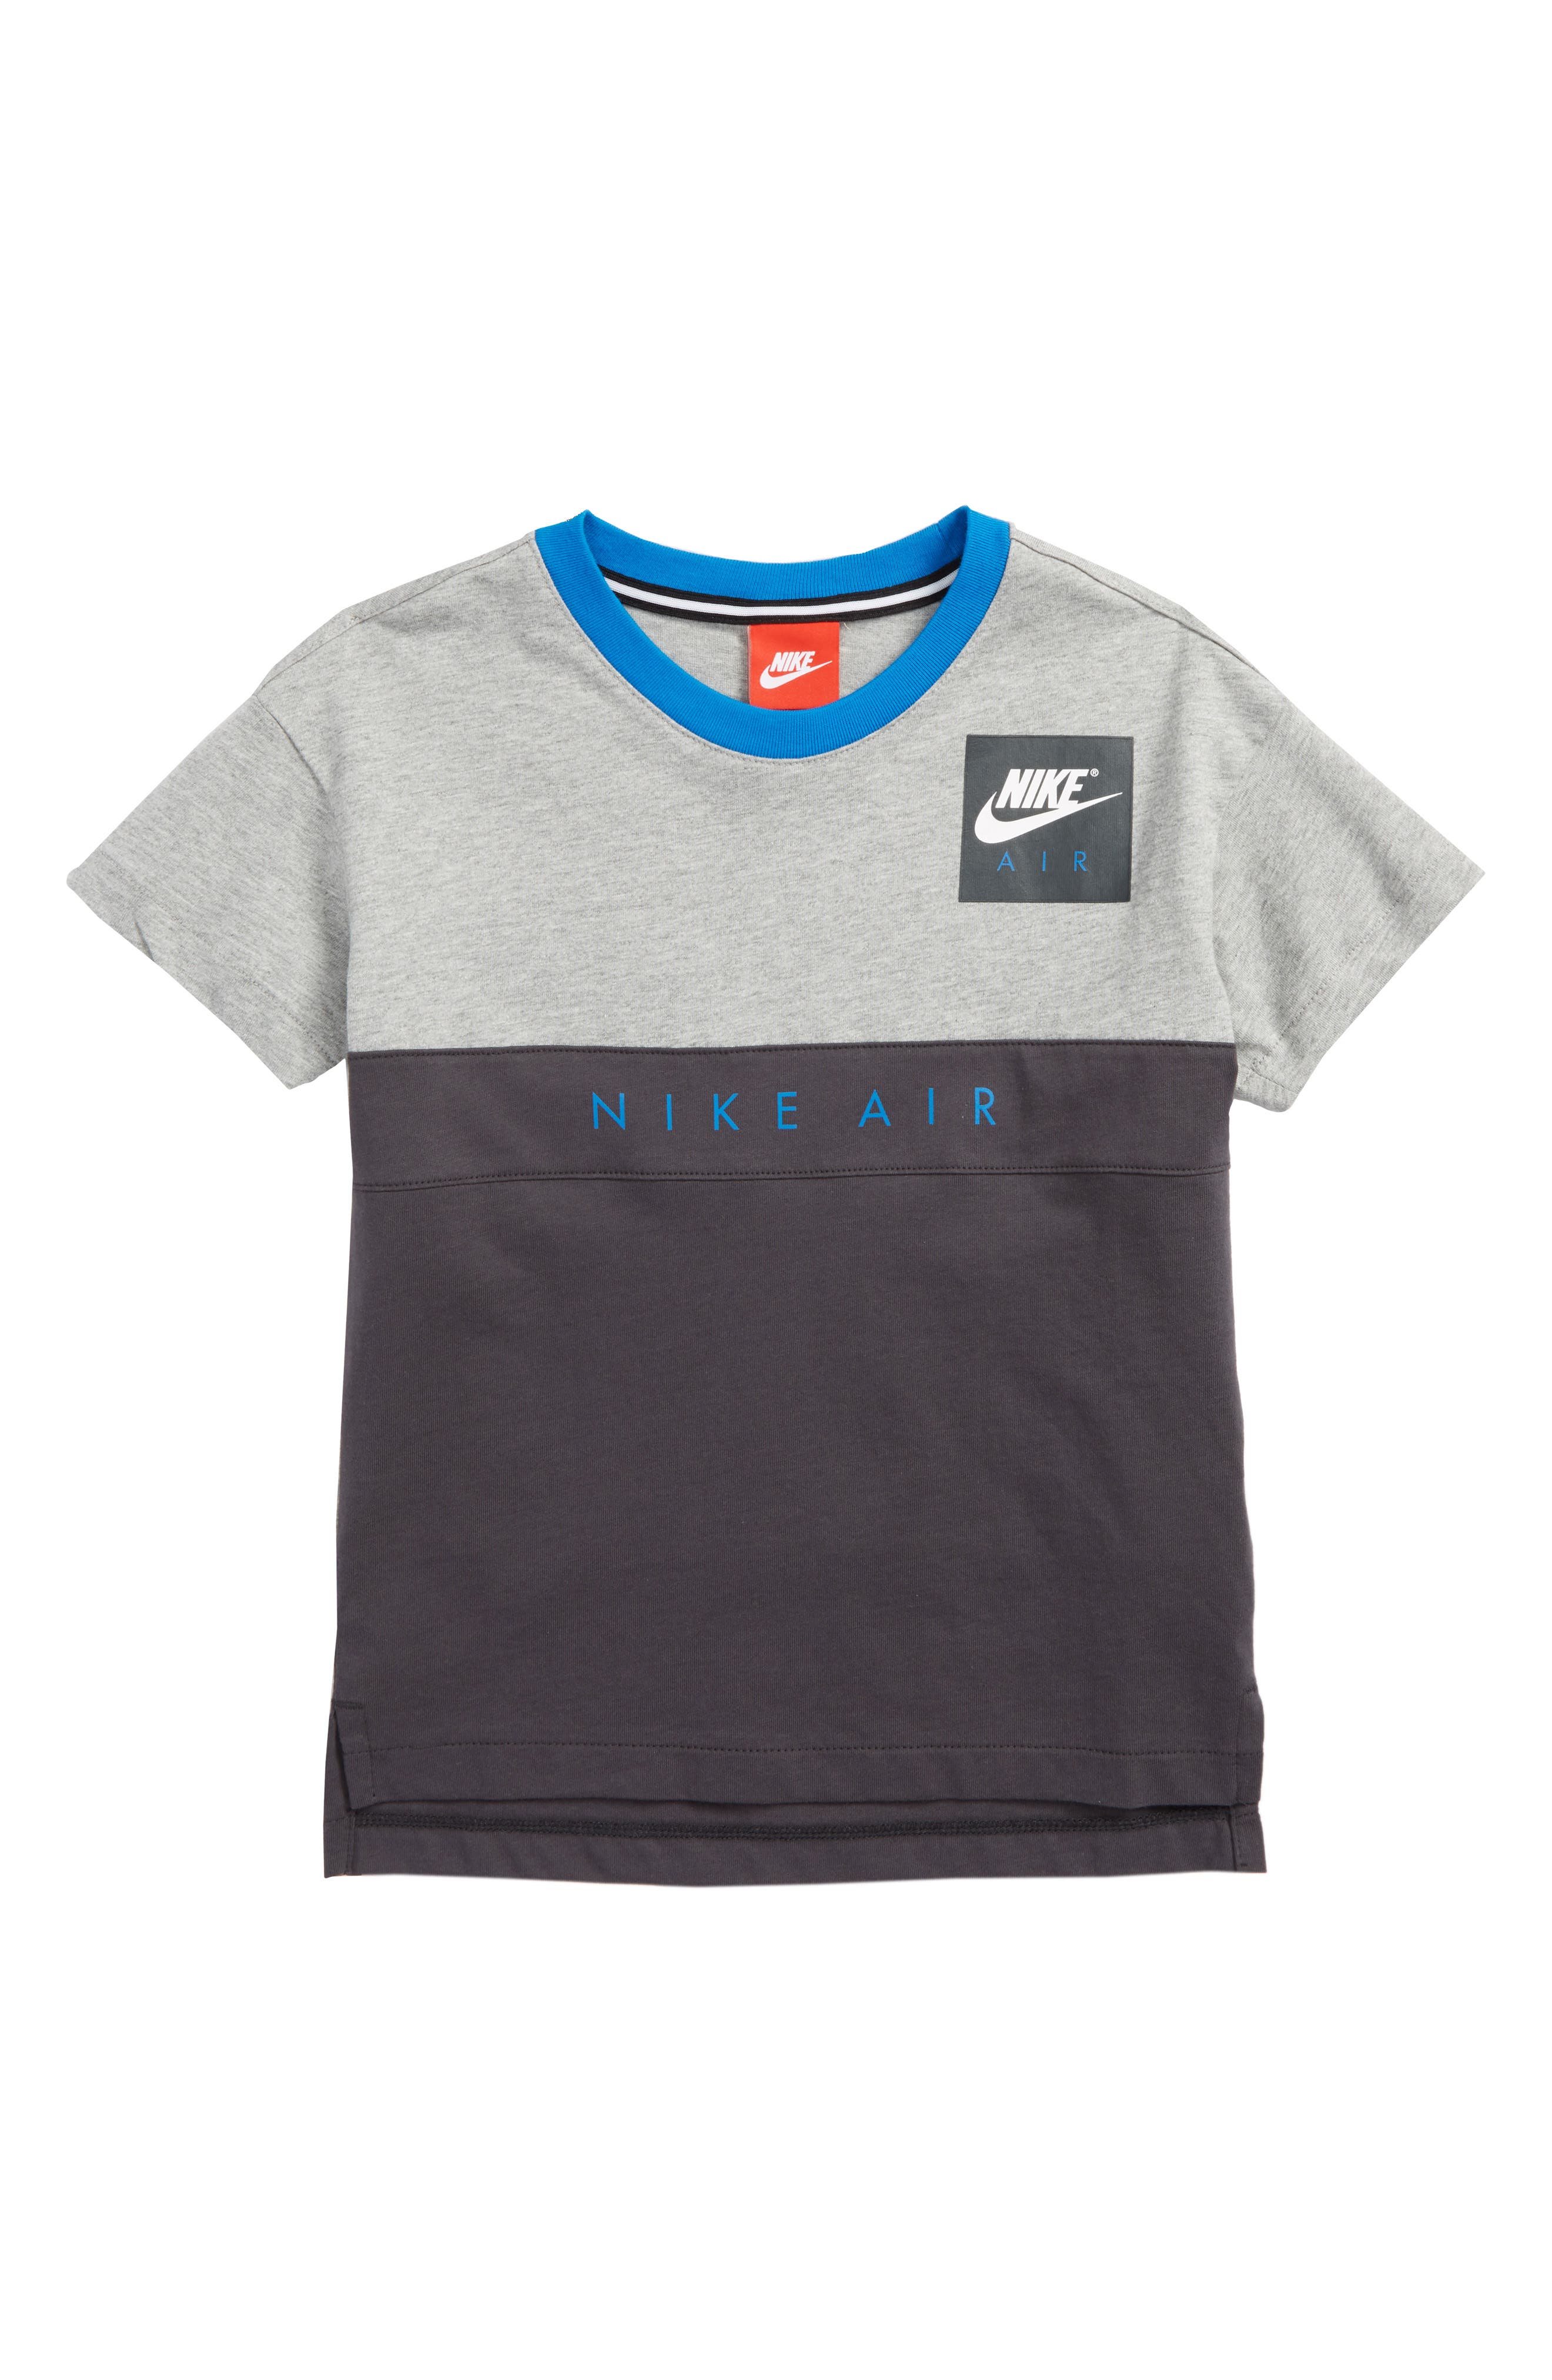 Air Shirt,                             Main thumbnail 1, color,                             Dark Grey Heather/ Anthracite